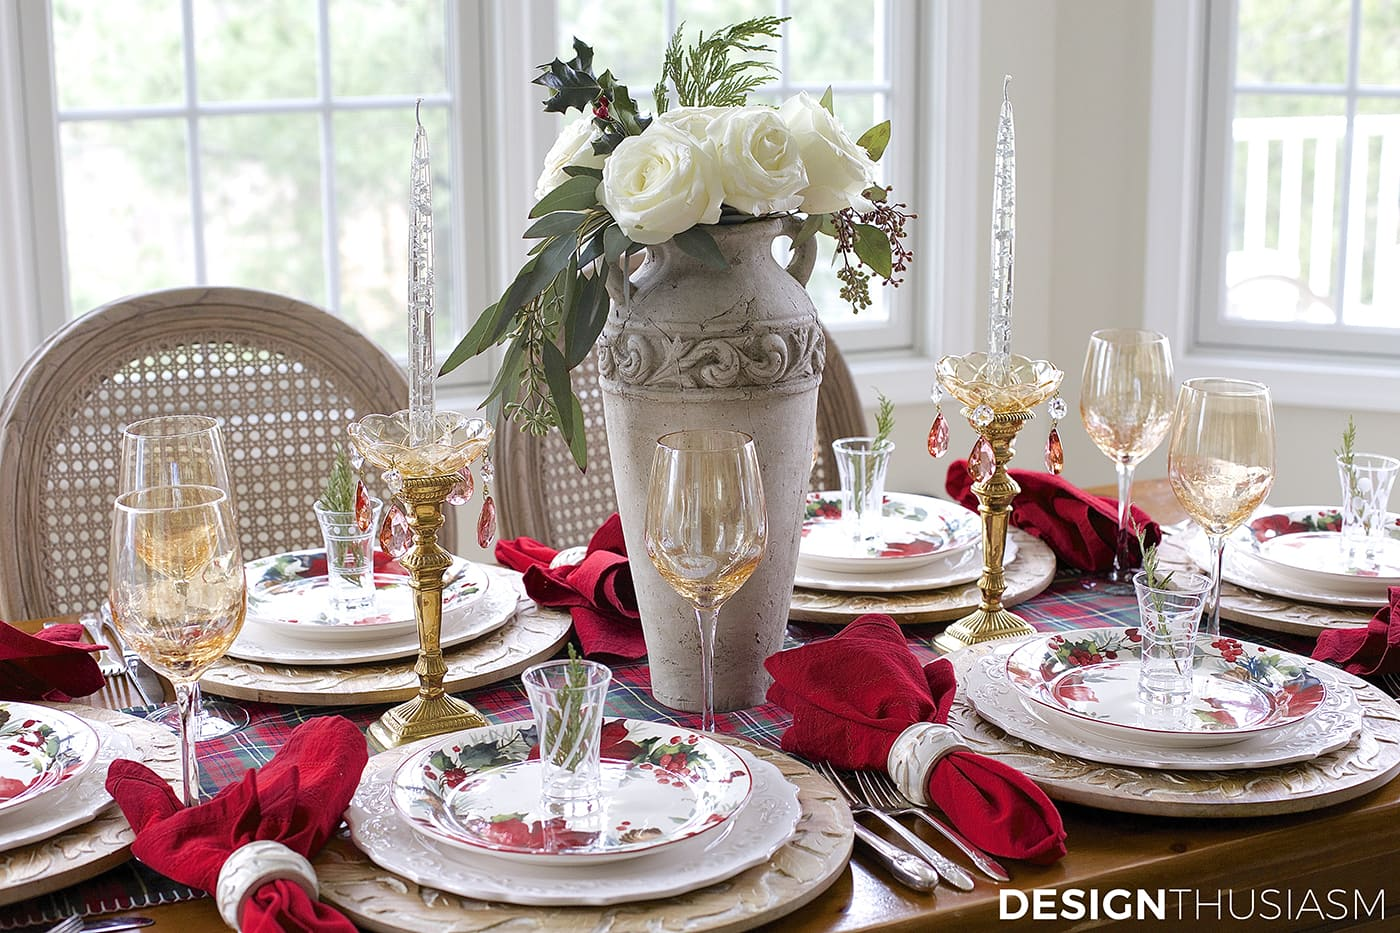 Cozy Christmas Tablescape with Floral and Plaid | Designthusiasm.com